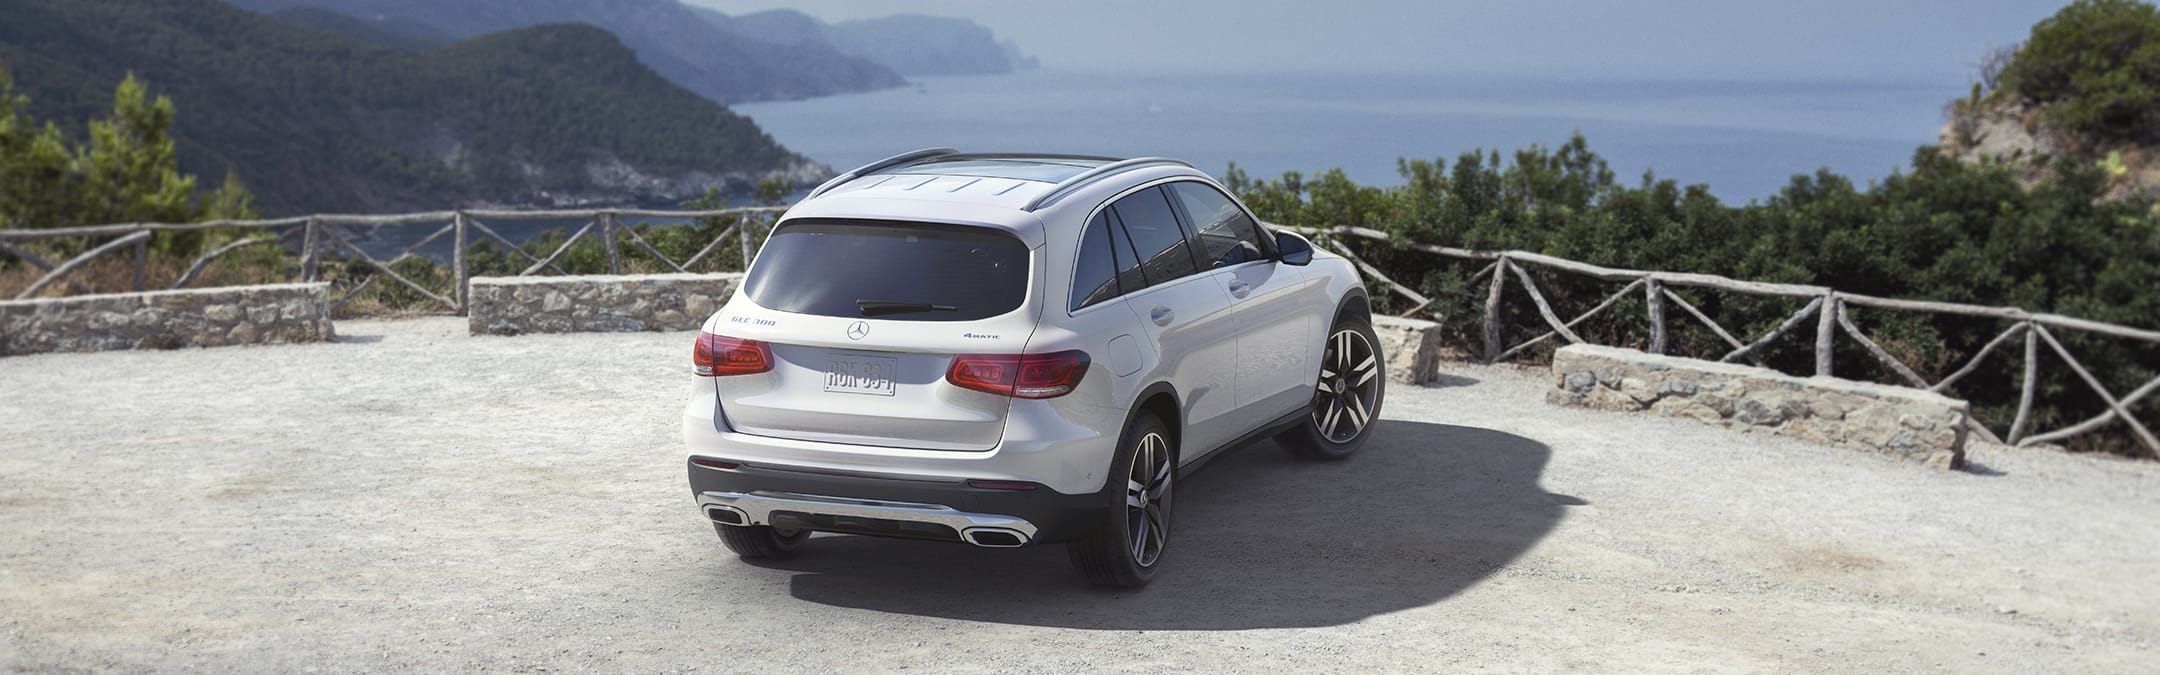 2020 GLC SUV Design